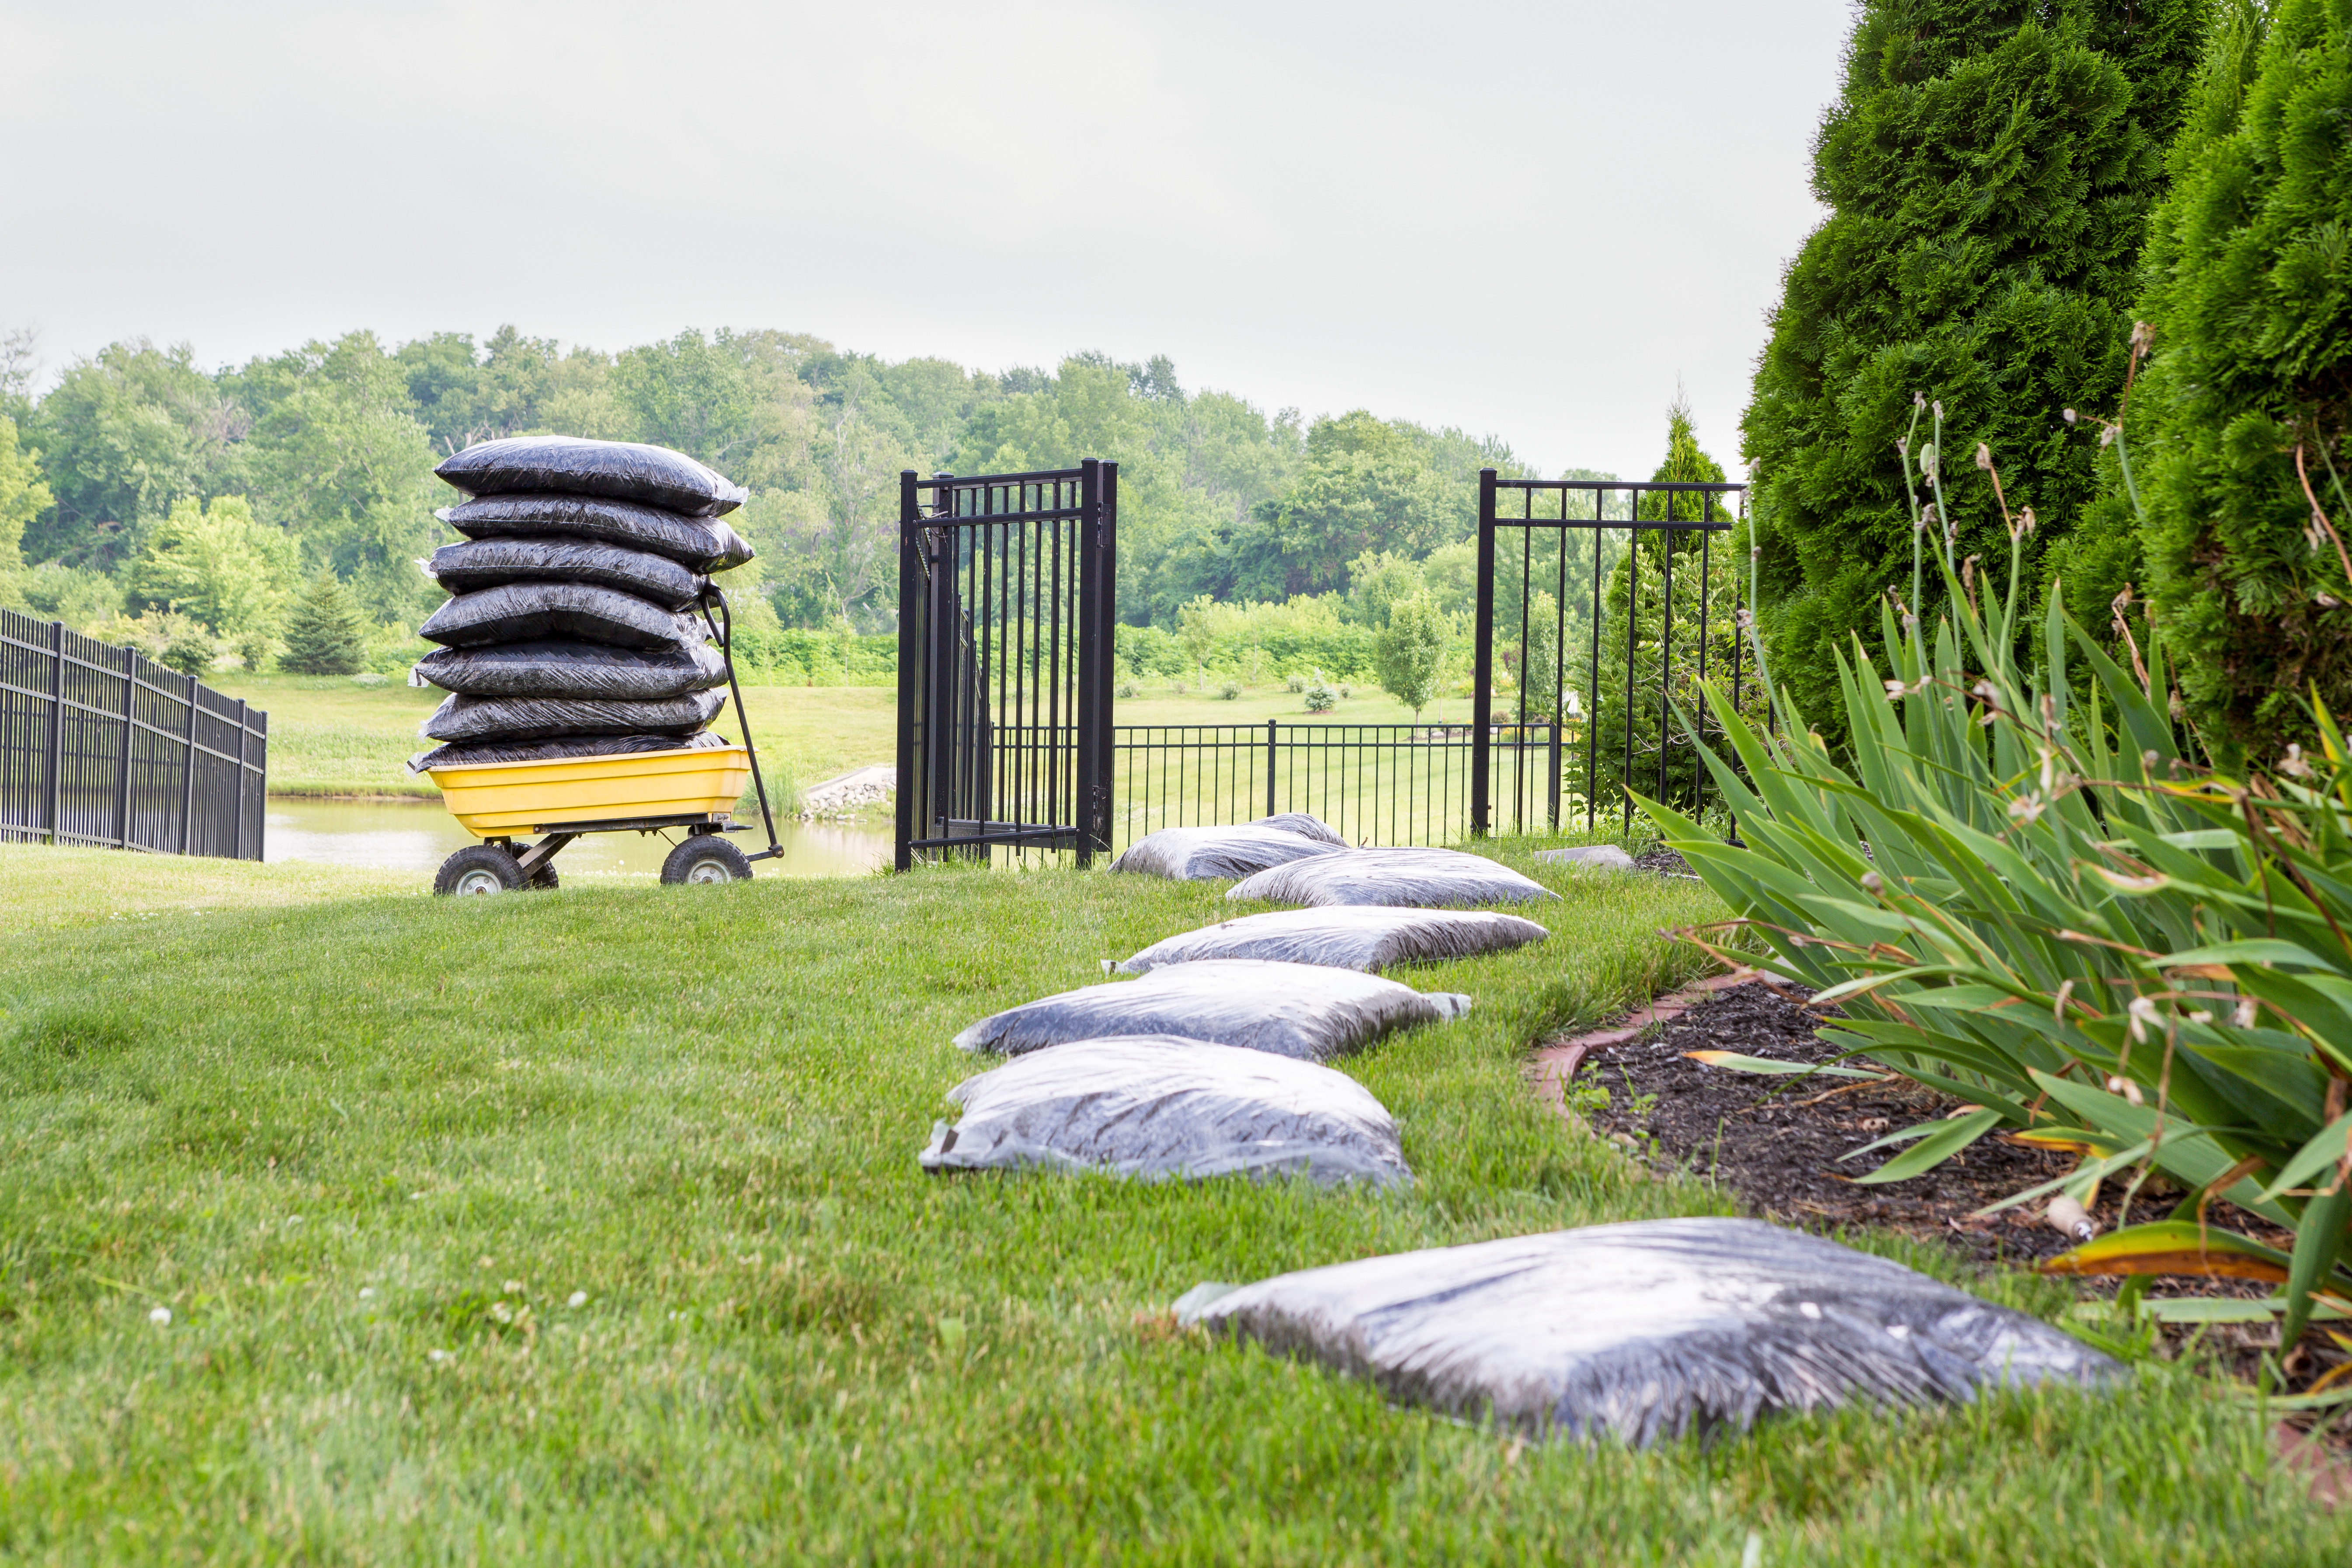 Mulching the garden takes time and effort with bags of mulch laid out on the lawn alongside the flowerbed in a long row waiting to be spread with a cart stacked full of bags in the background